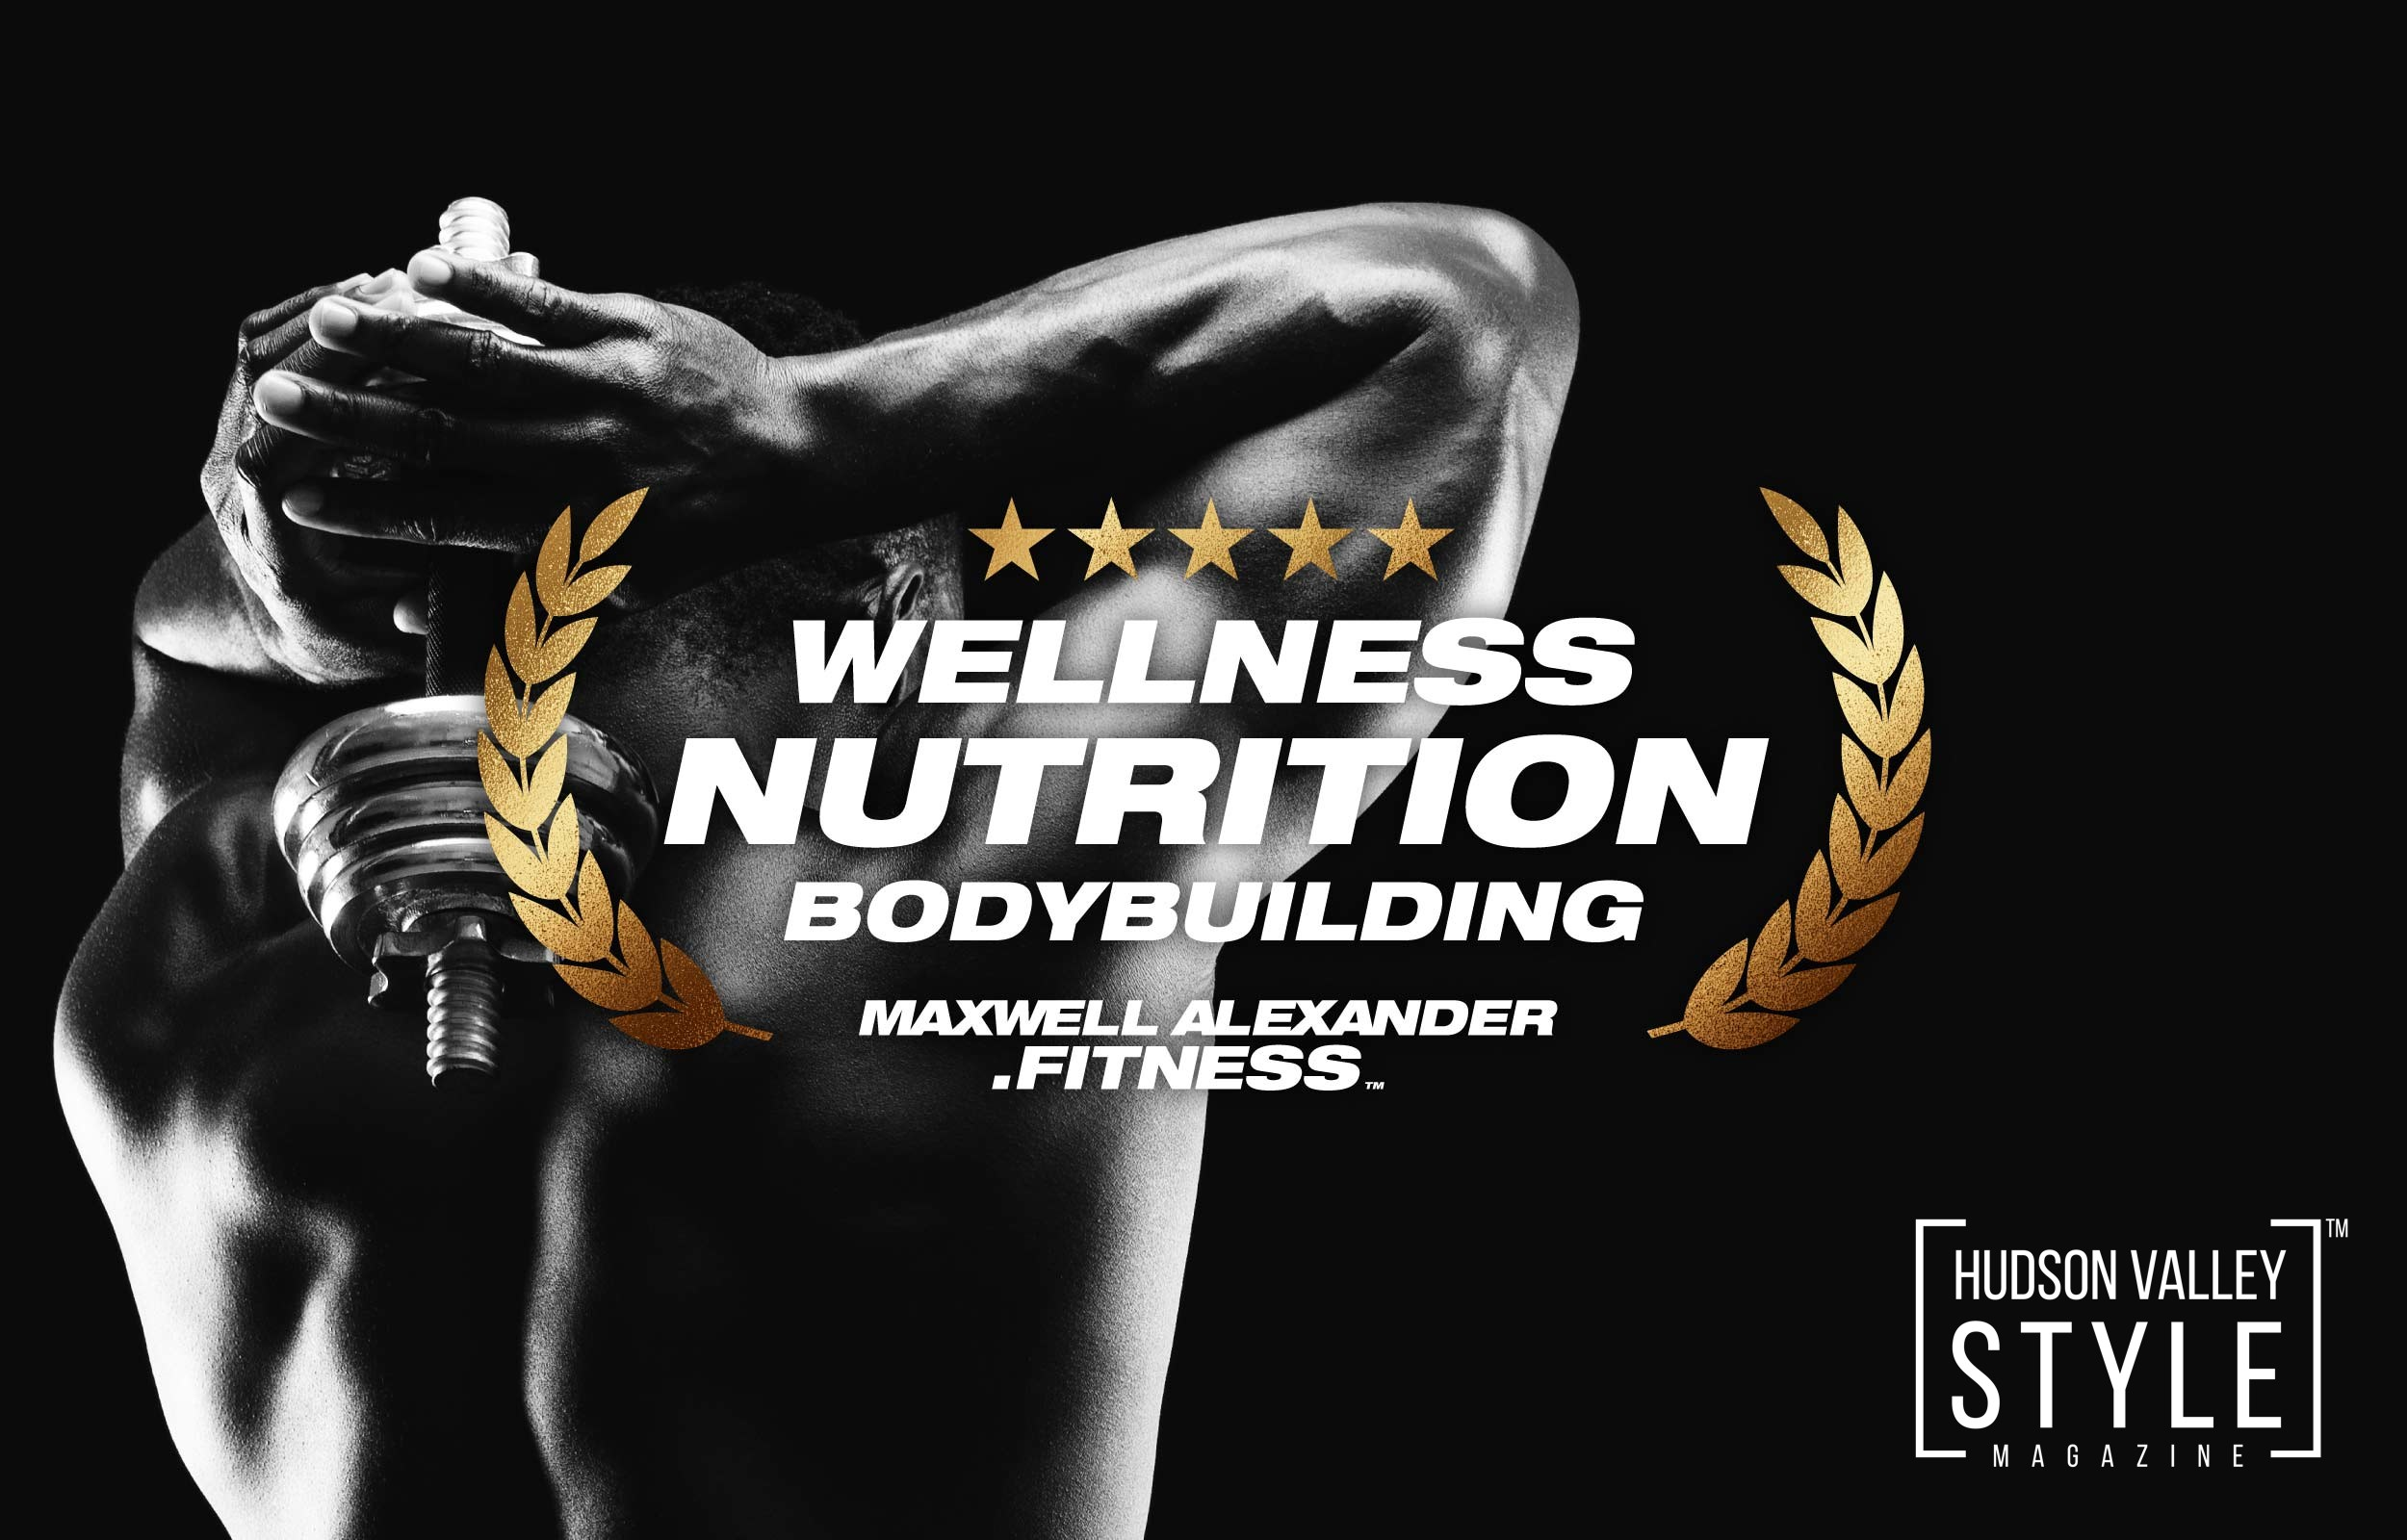 Maxwell Alexander - the best Online Fitness, Wellness, Nutrition and Bodybuilding Coach